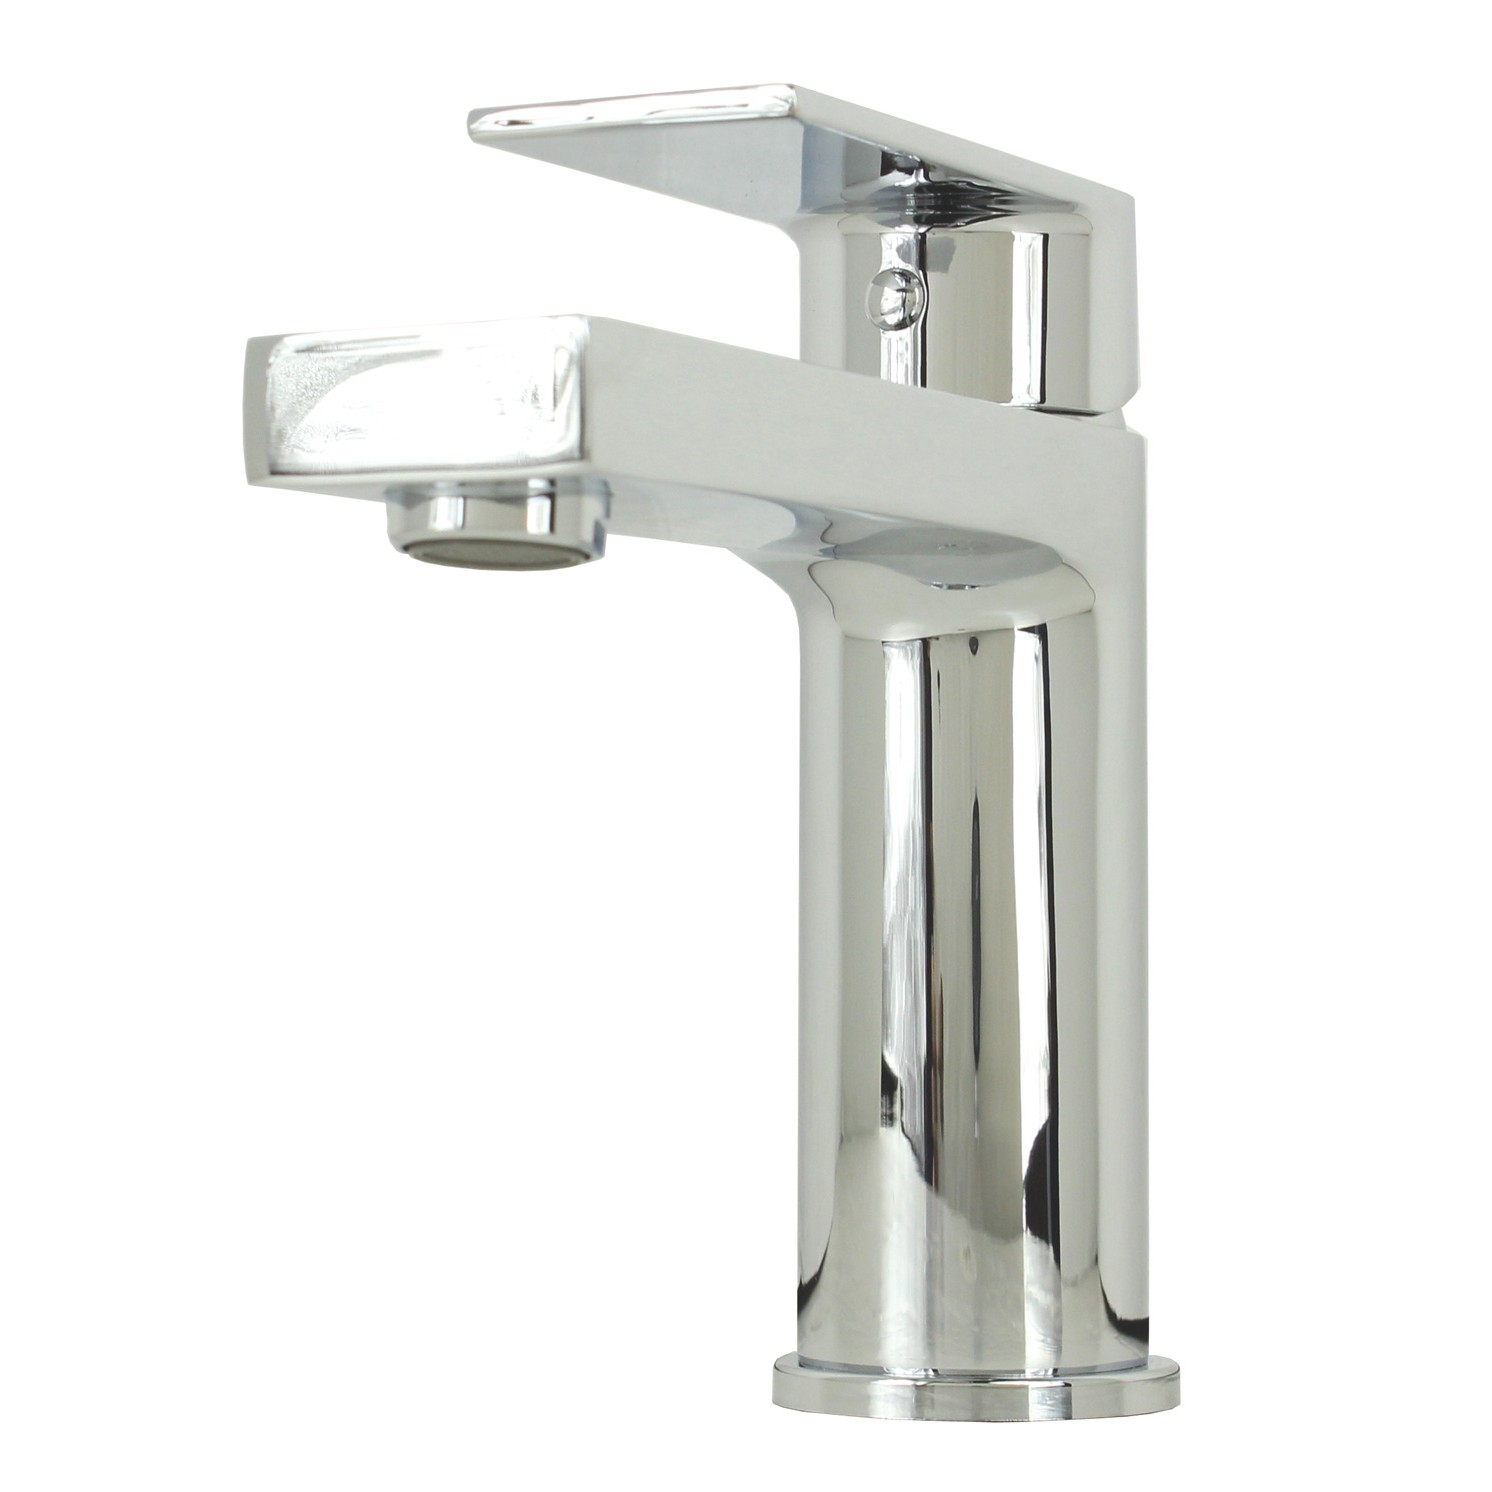 Single Hole Vessel Sink Faucet : Home > Anna Polished Chrome Bathroom Vessel Sink Single Hole Faucet